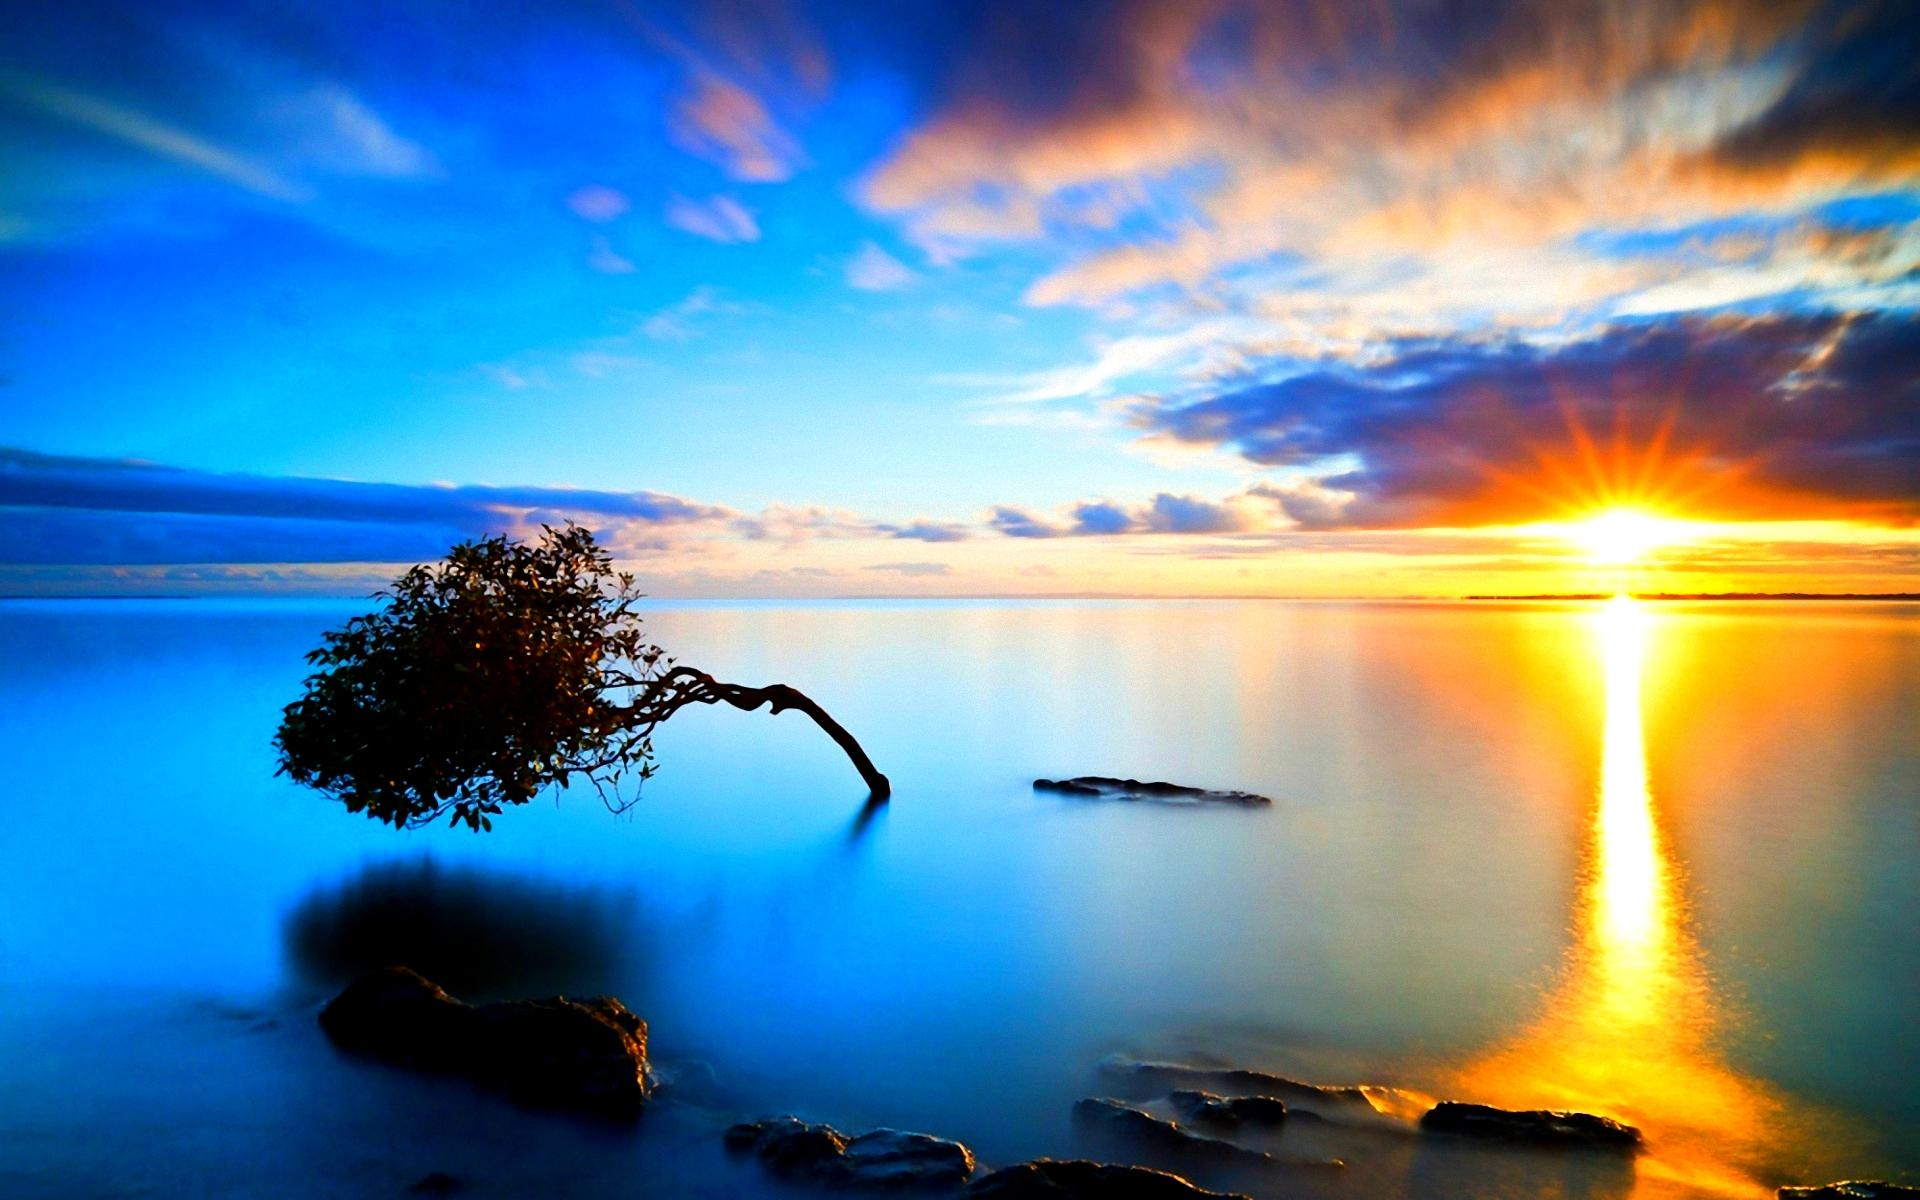 BRAND NEW DAY WALLPAPER   60740   HD Wallpapers   [wallpapersinhq 1920x1200